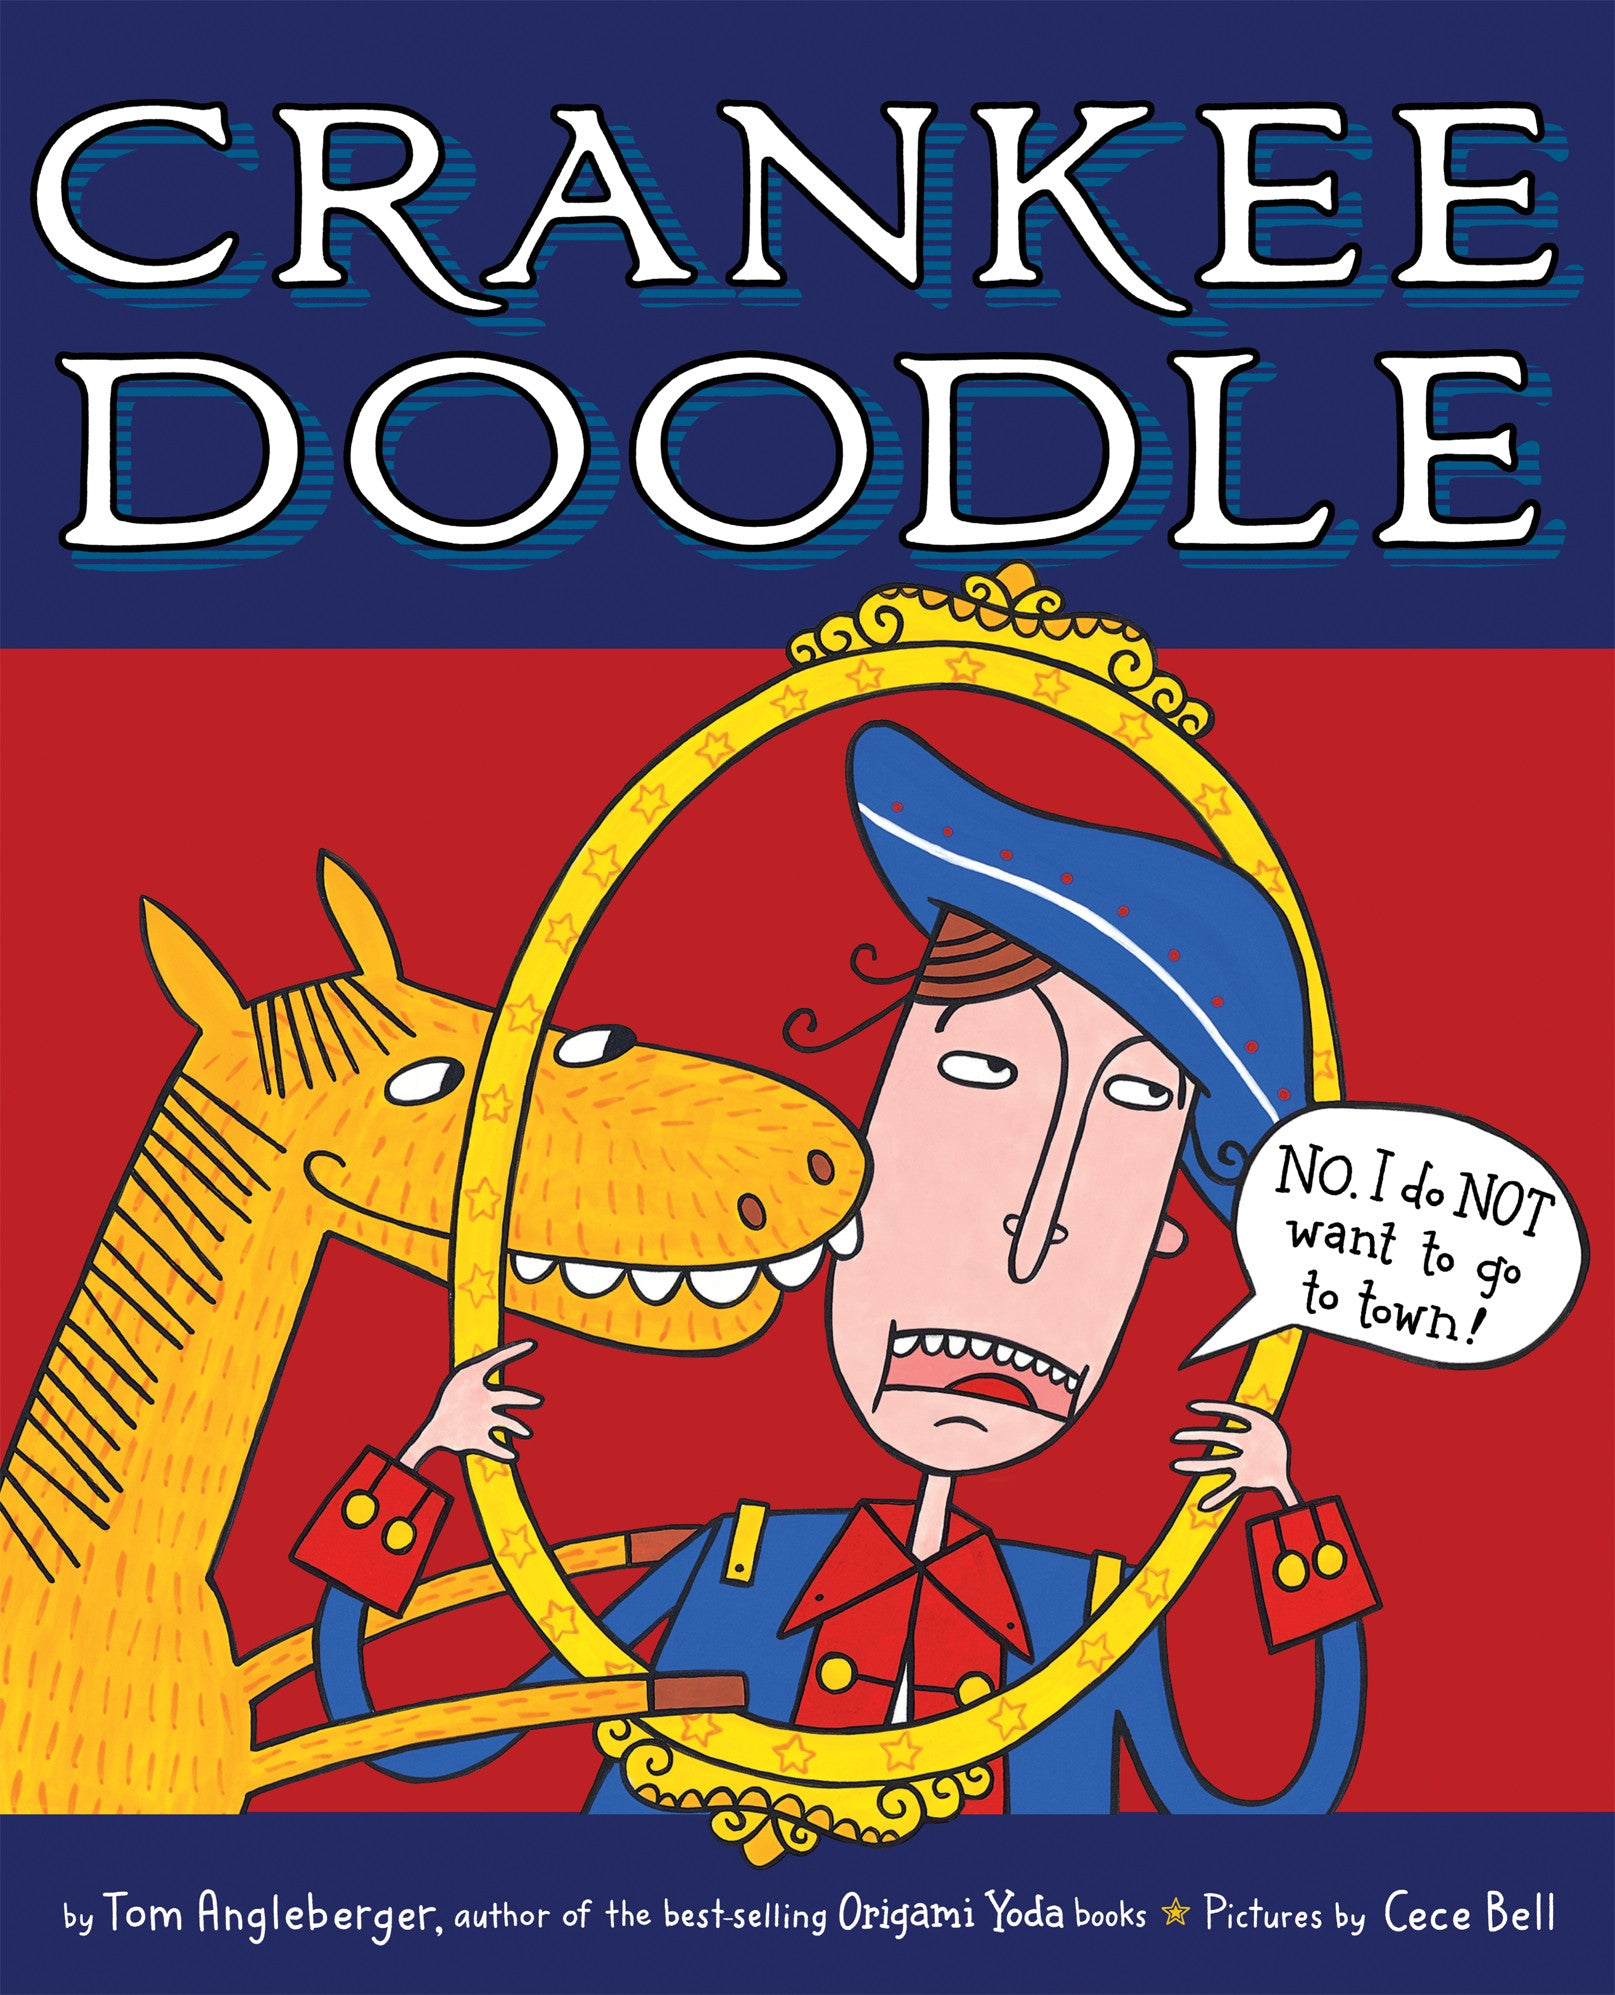 Crankee doodle turnrow book co crankee doodle jeuxipadfo Images